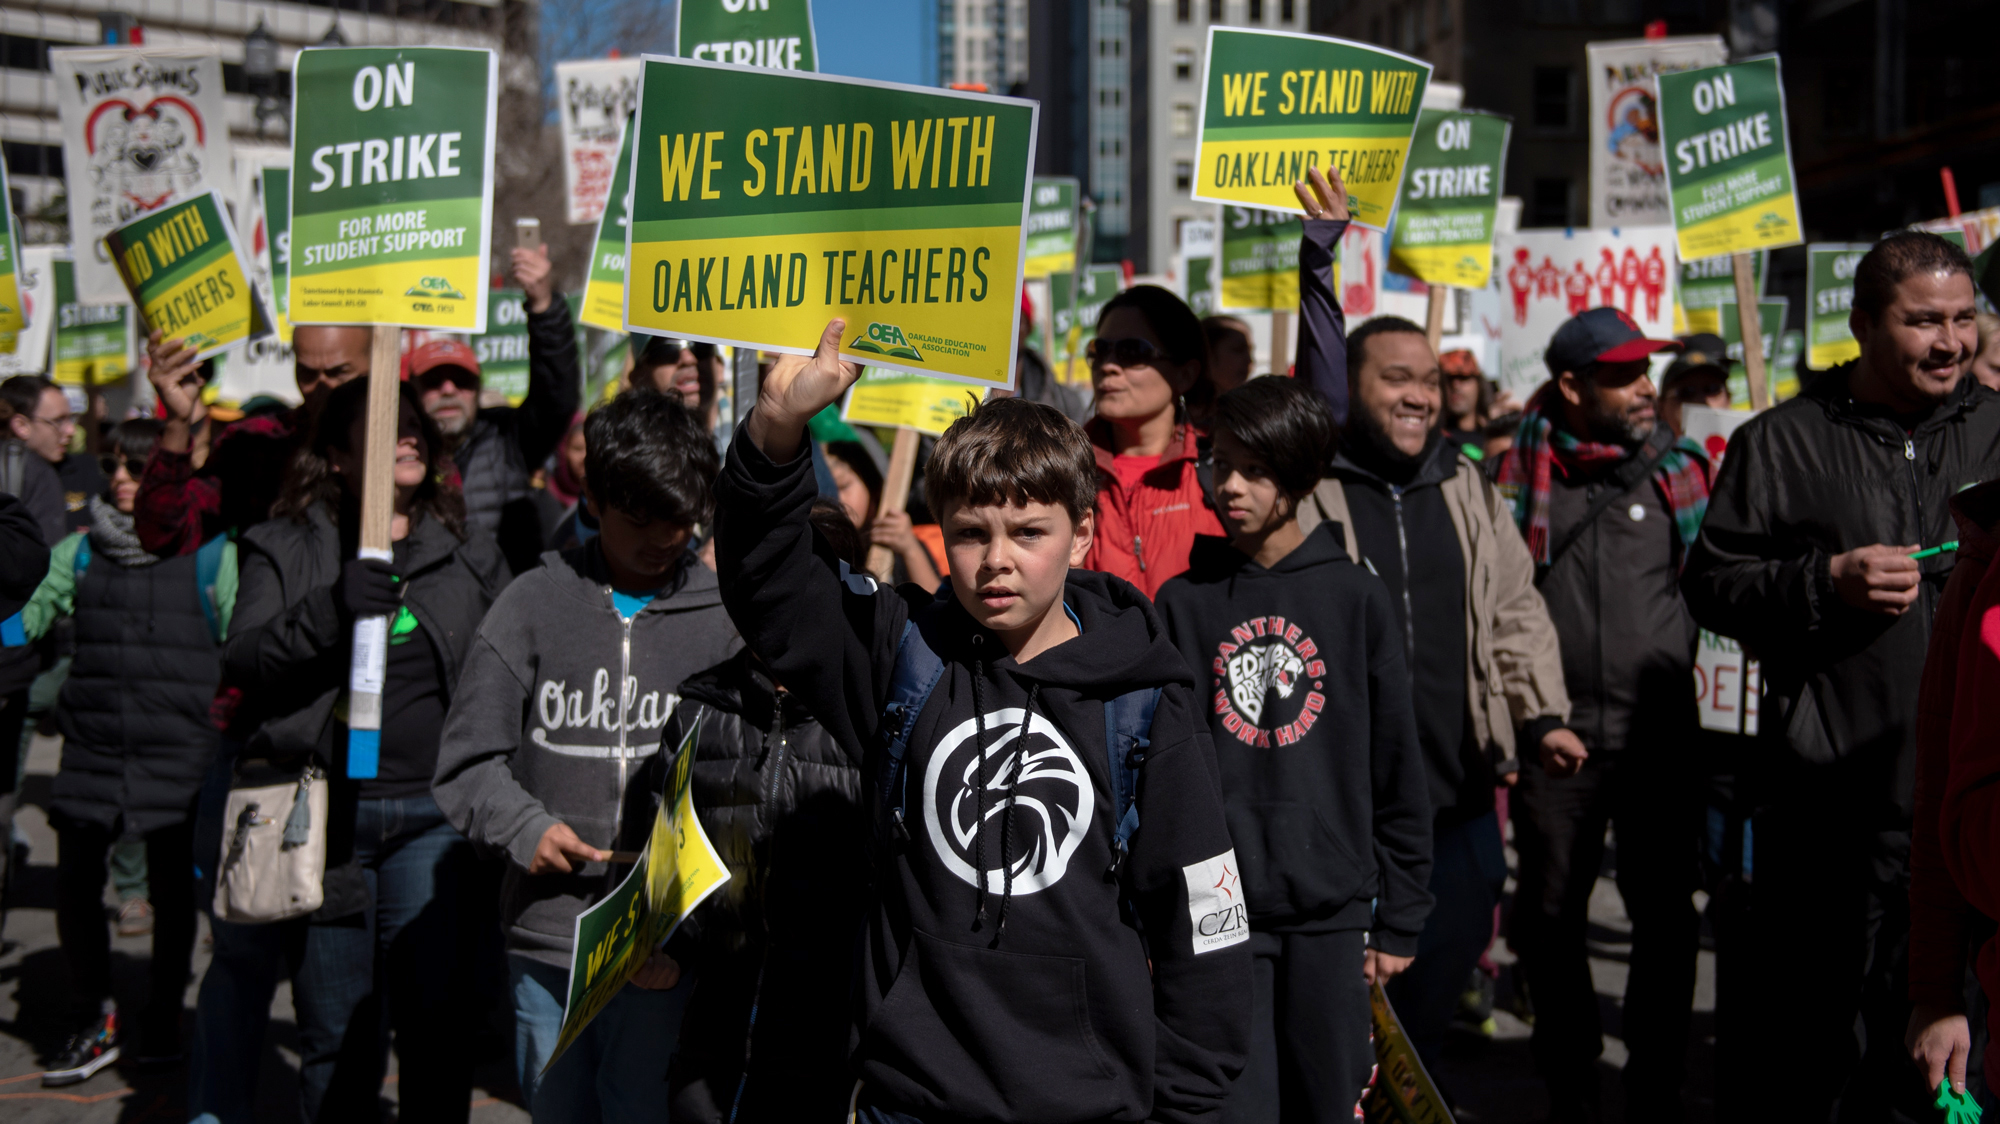 On the first day of a district-wide strike, students joined their teachers in Oakland, Calif., to demand higher wages for educators and more resources for public schools. Gabe, 10, holds a sign during the march in downtown Oakland.